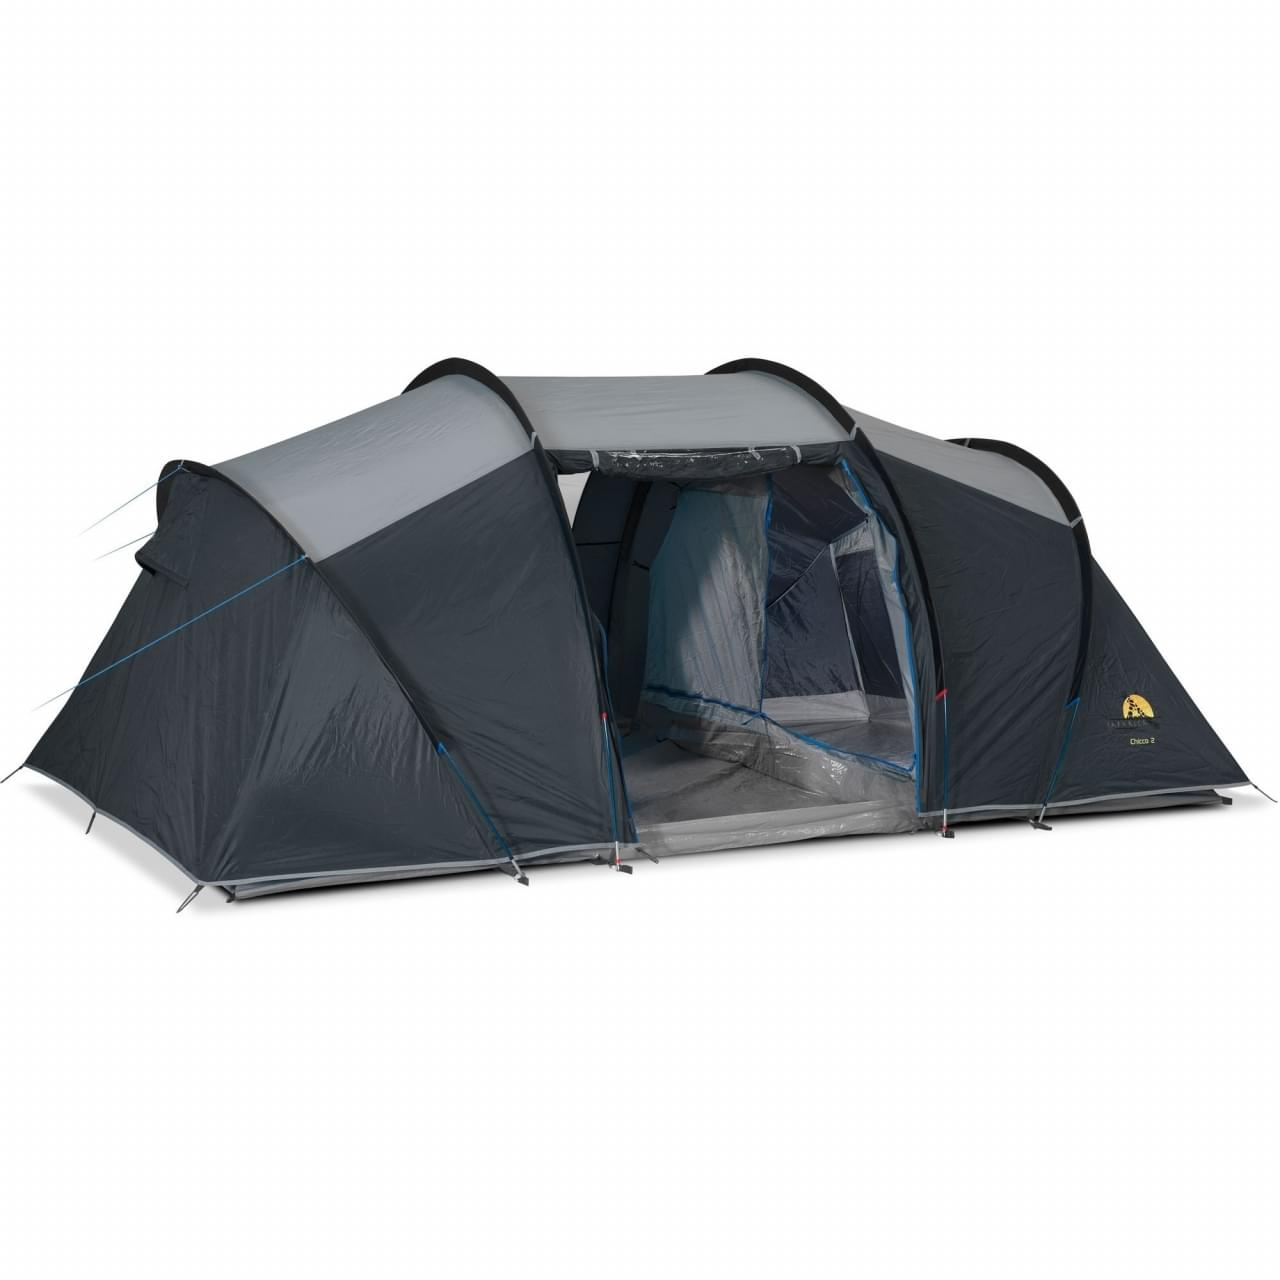 Safarica Chicco - 2 Persoons Tent